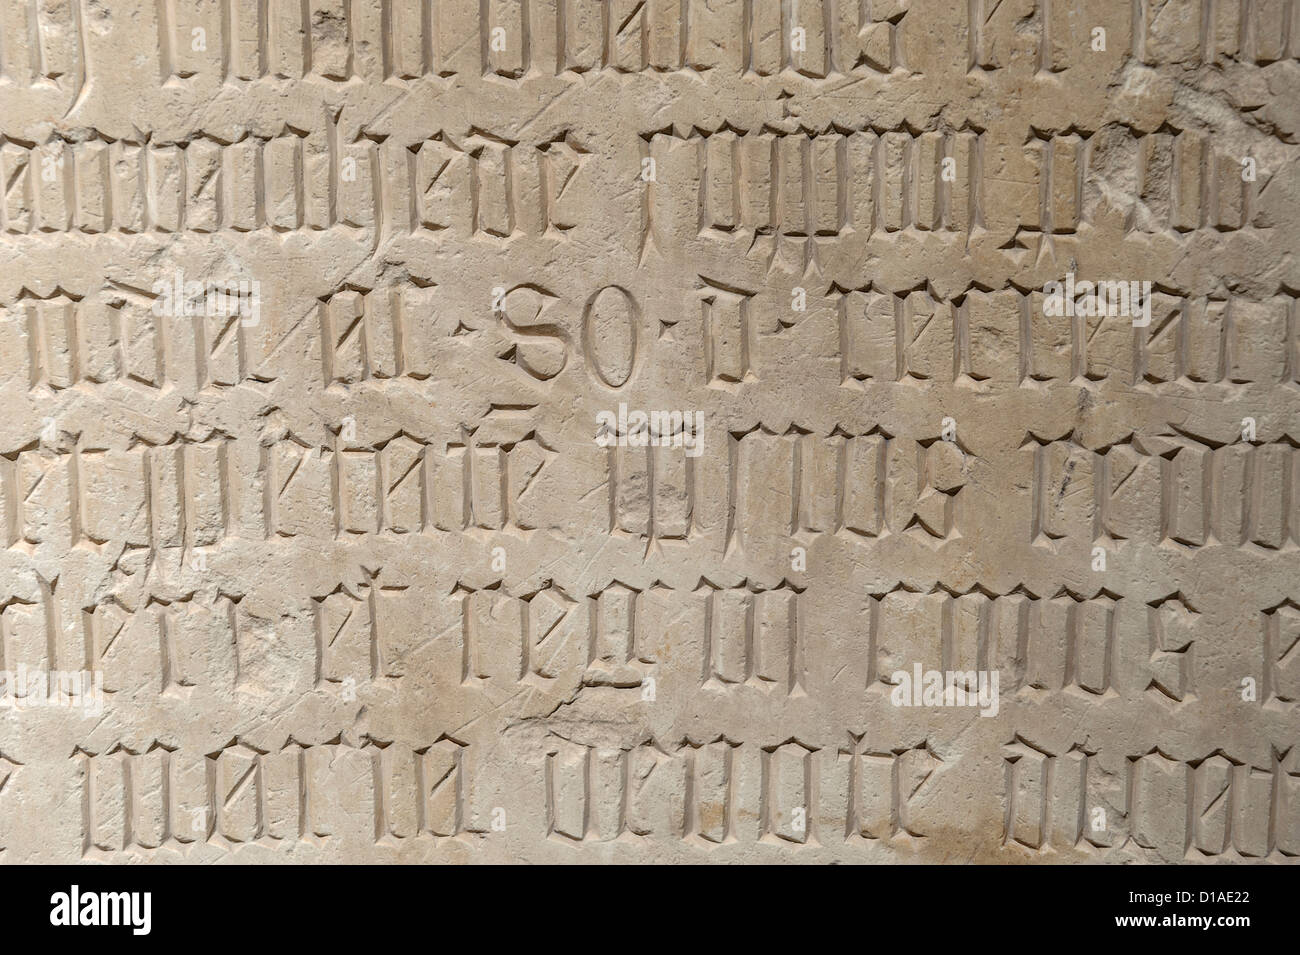 Ancient medieval writings etched on stone - Stock Image